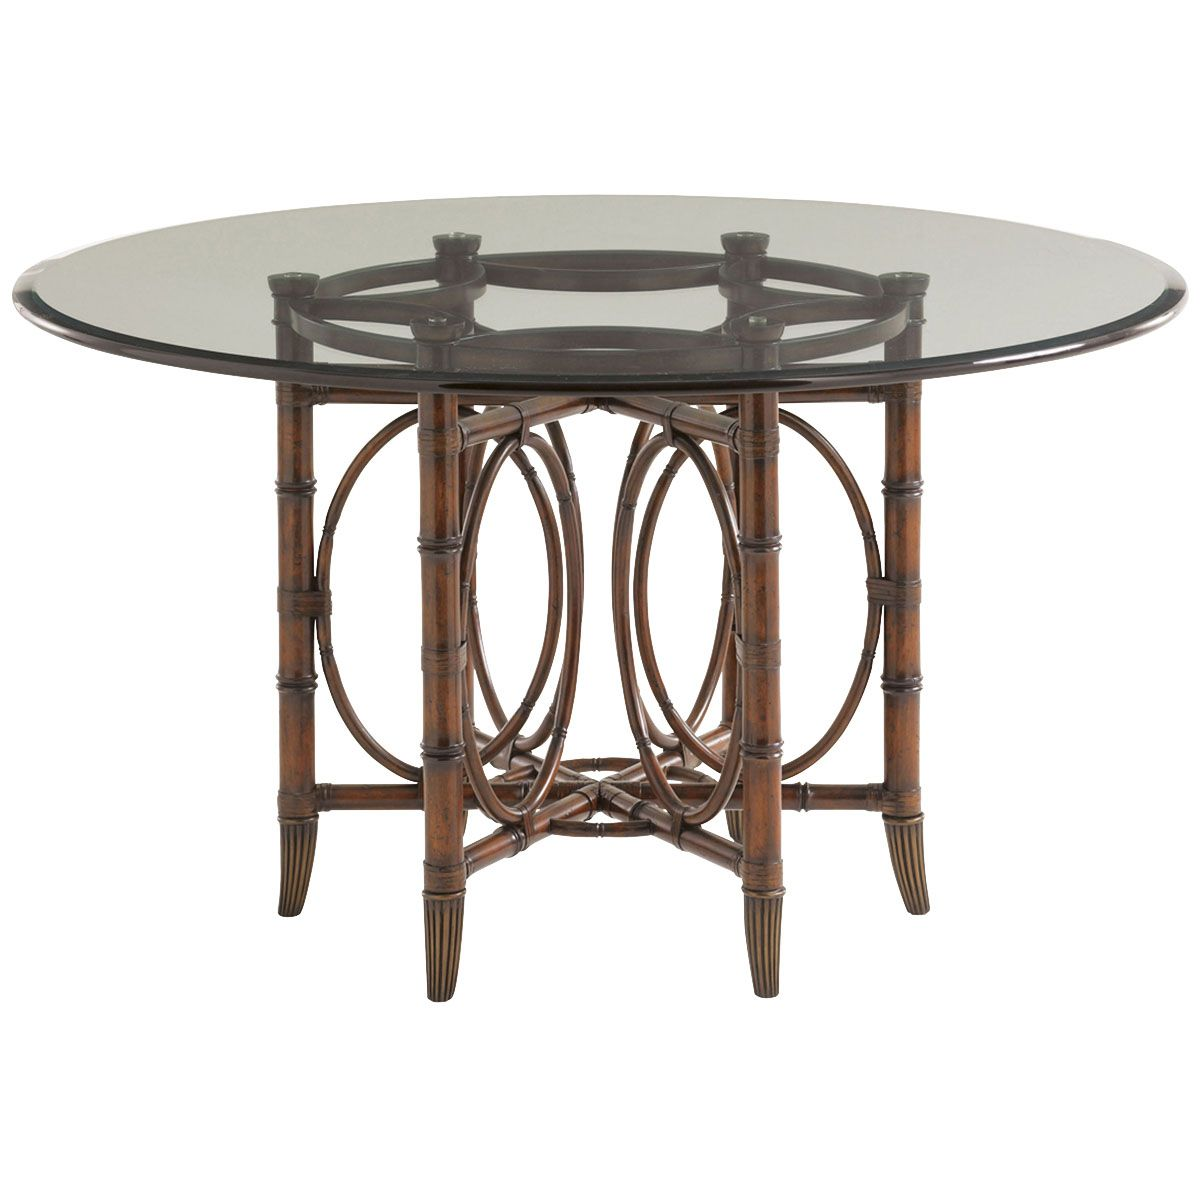 Coral Sea Rattan 54 Inch Glass Top Dining Table 545 875 001 054gt